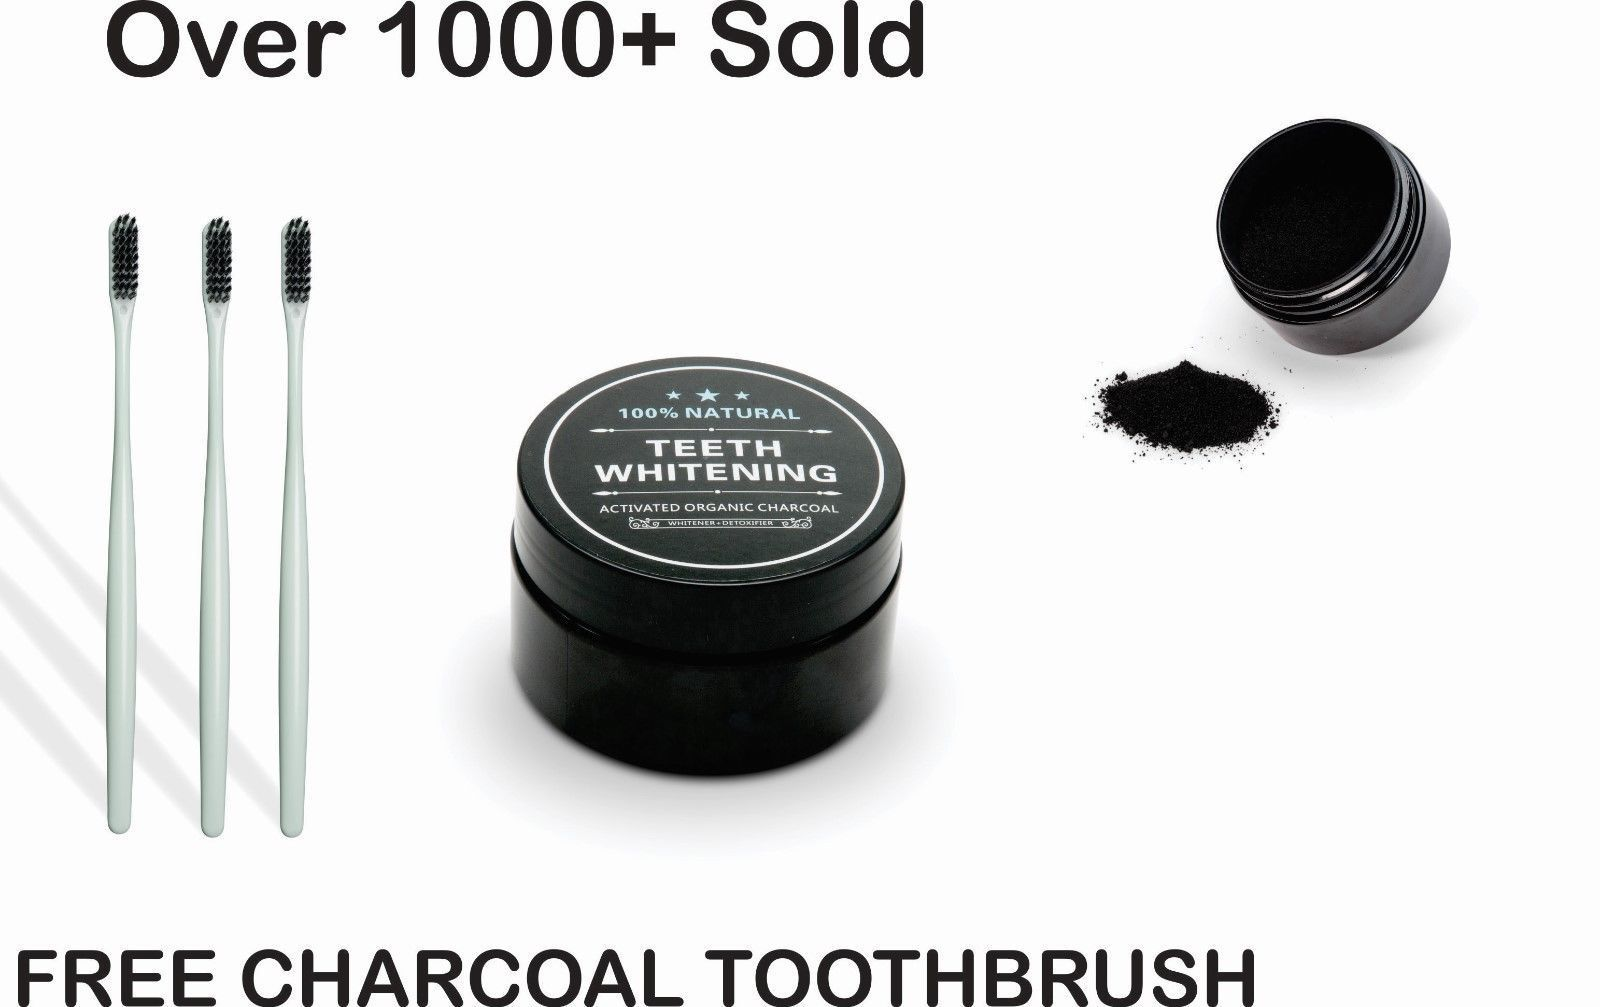 Teeth Whitener -  Teeth Whitener – #teethwhitener #teeth #whitener 100% ORGANIC COCONUT ACTIVATED CHARCOAL NATURAL  - #instantNaturalTeethWhitening #NaturalTeethWhiteningbakingsoda #NaturalTeethWhiteningcoconutoil #NaturalTeethWhiteningdiy #teeth #whitener